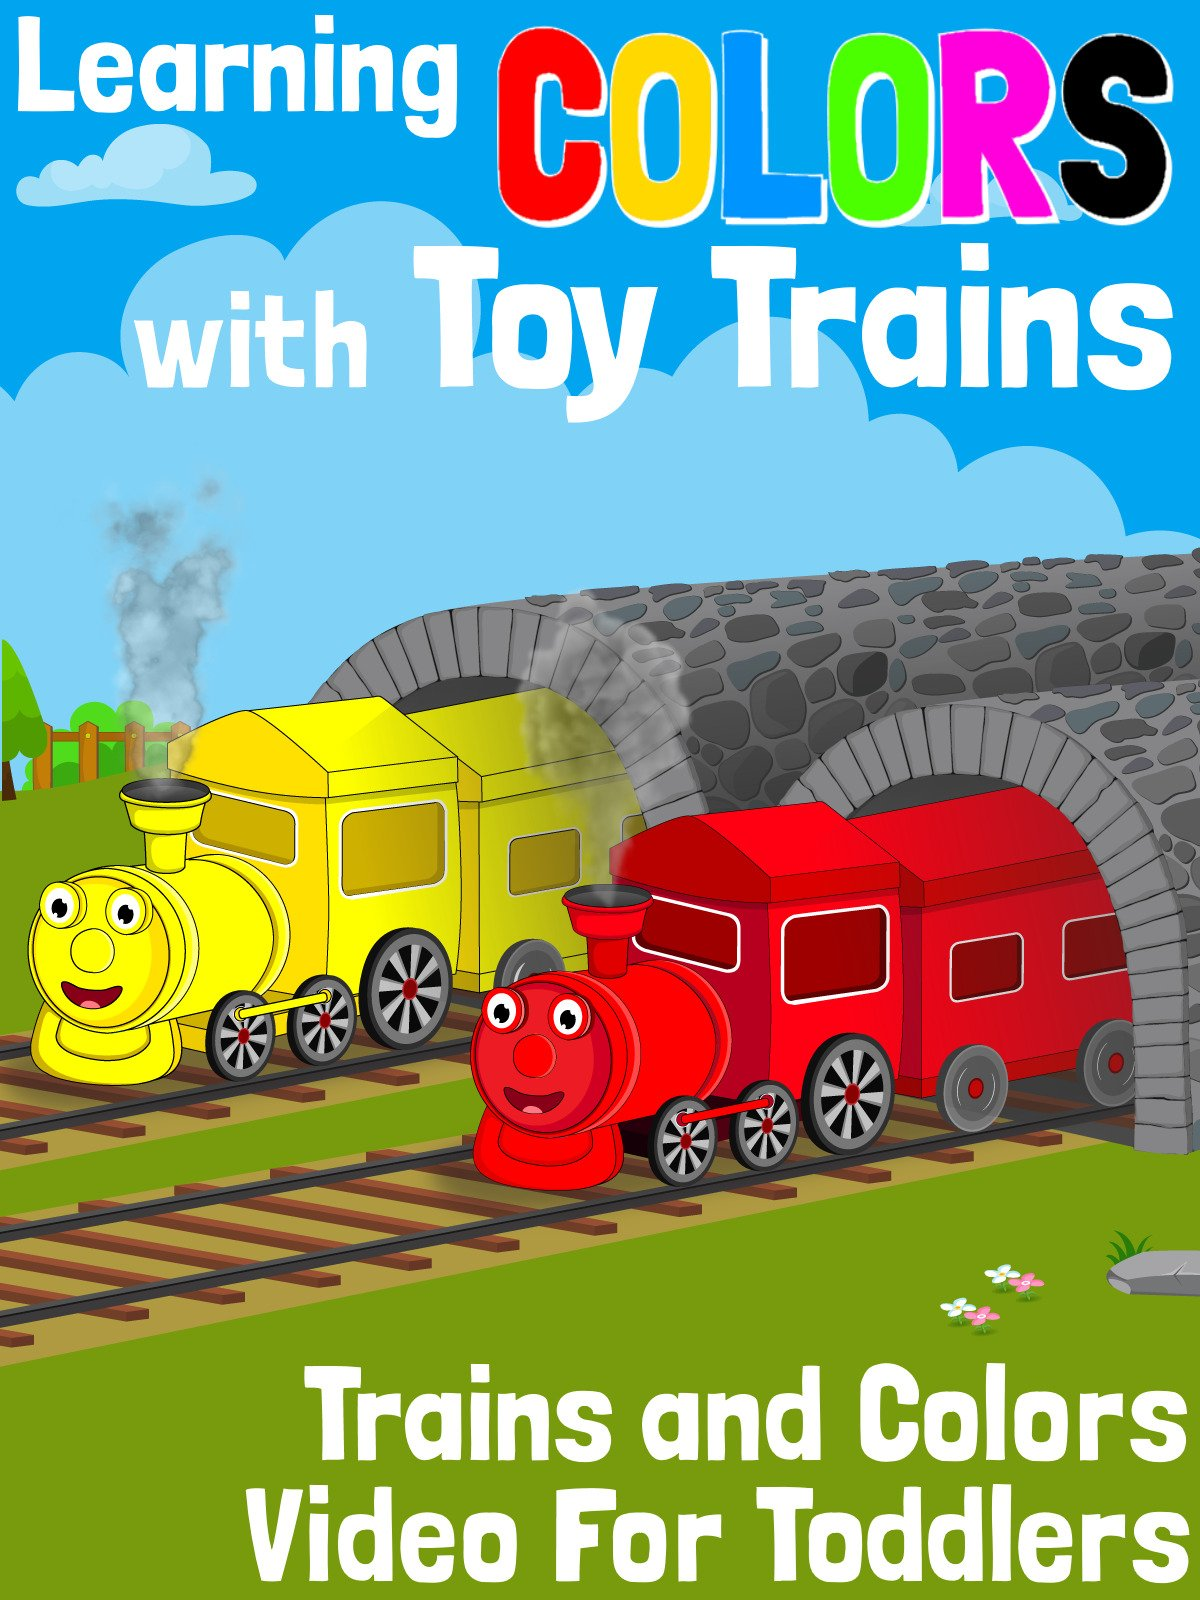 Learning Colors With Toy Trains on Amazon Prime Video UK